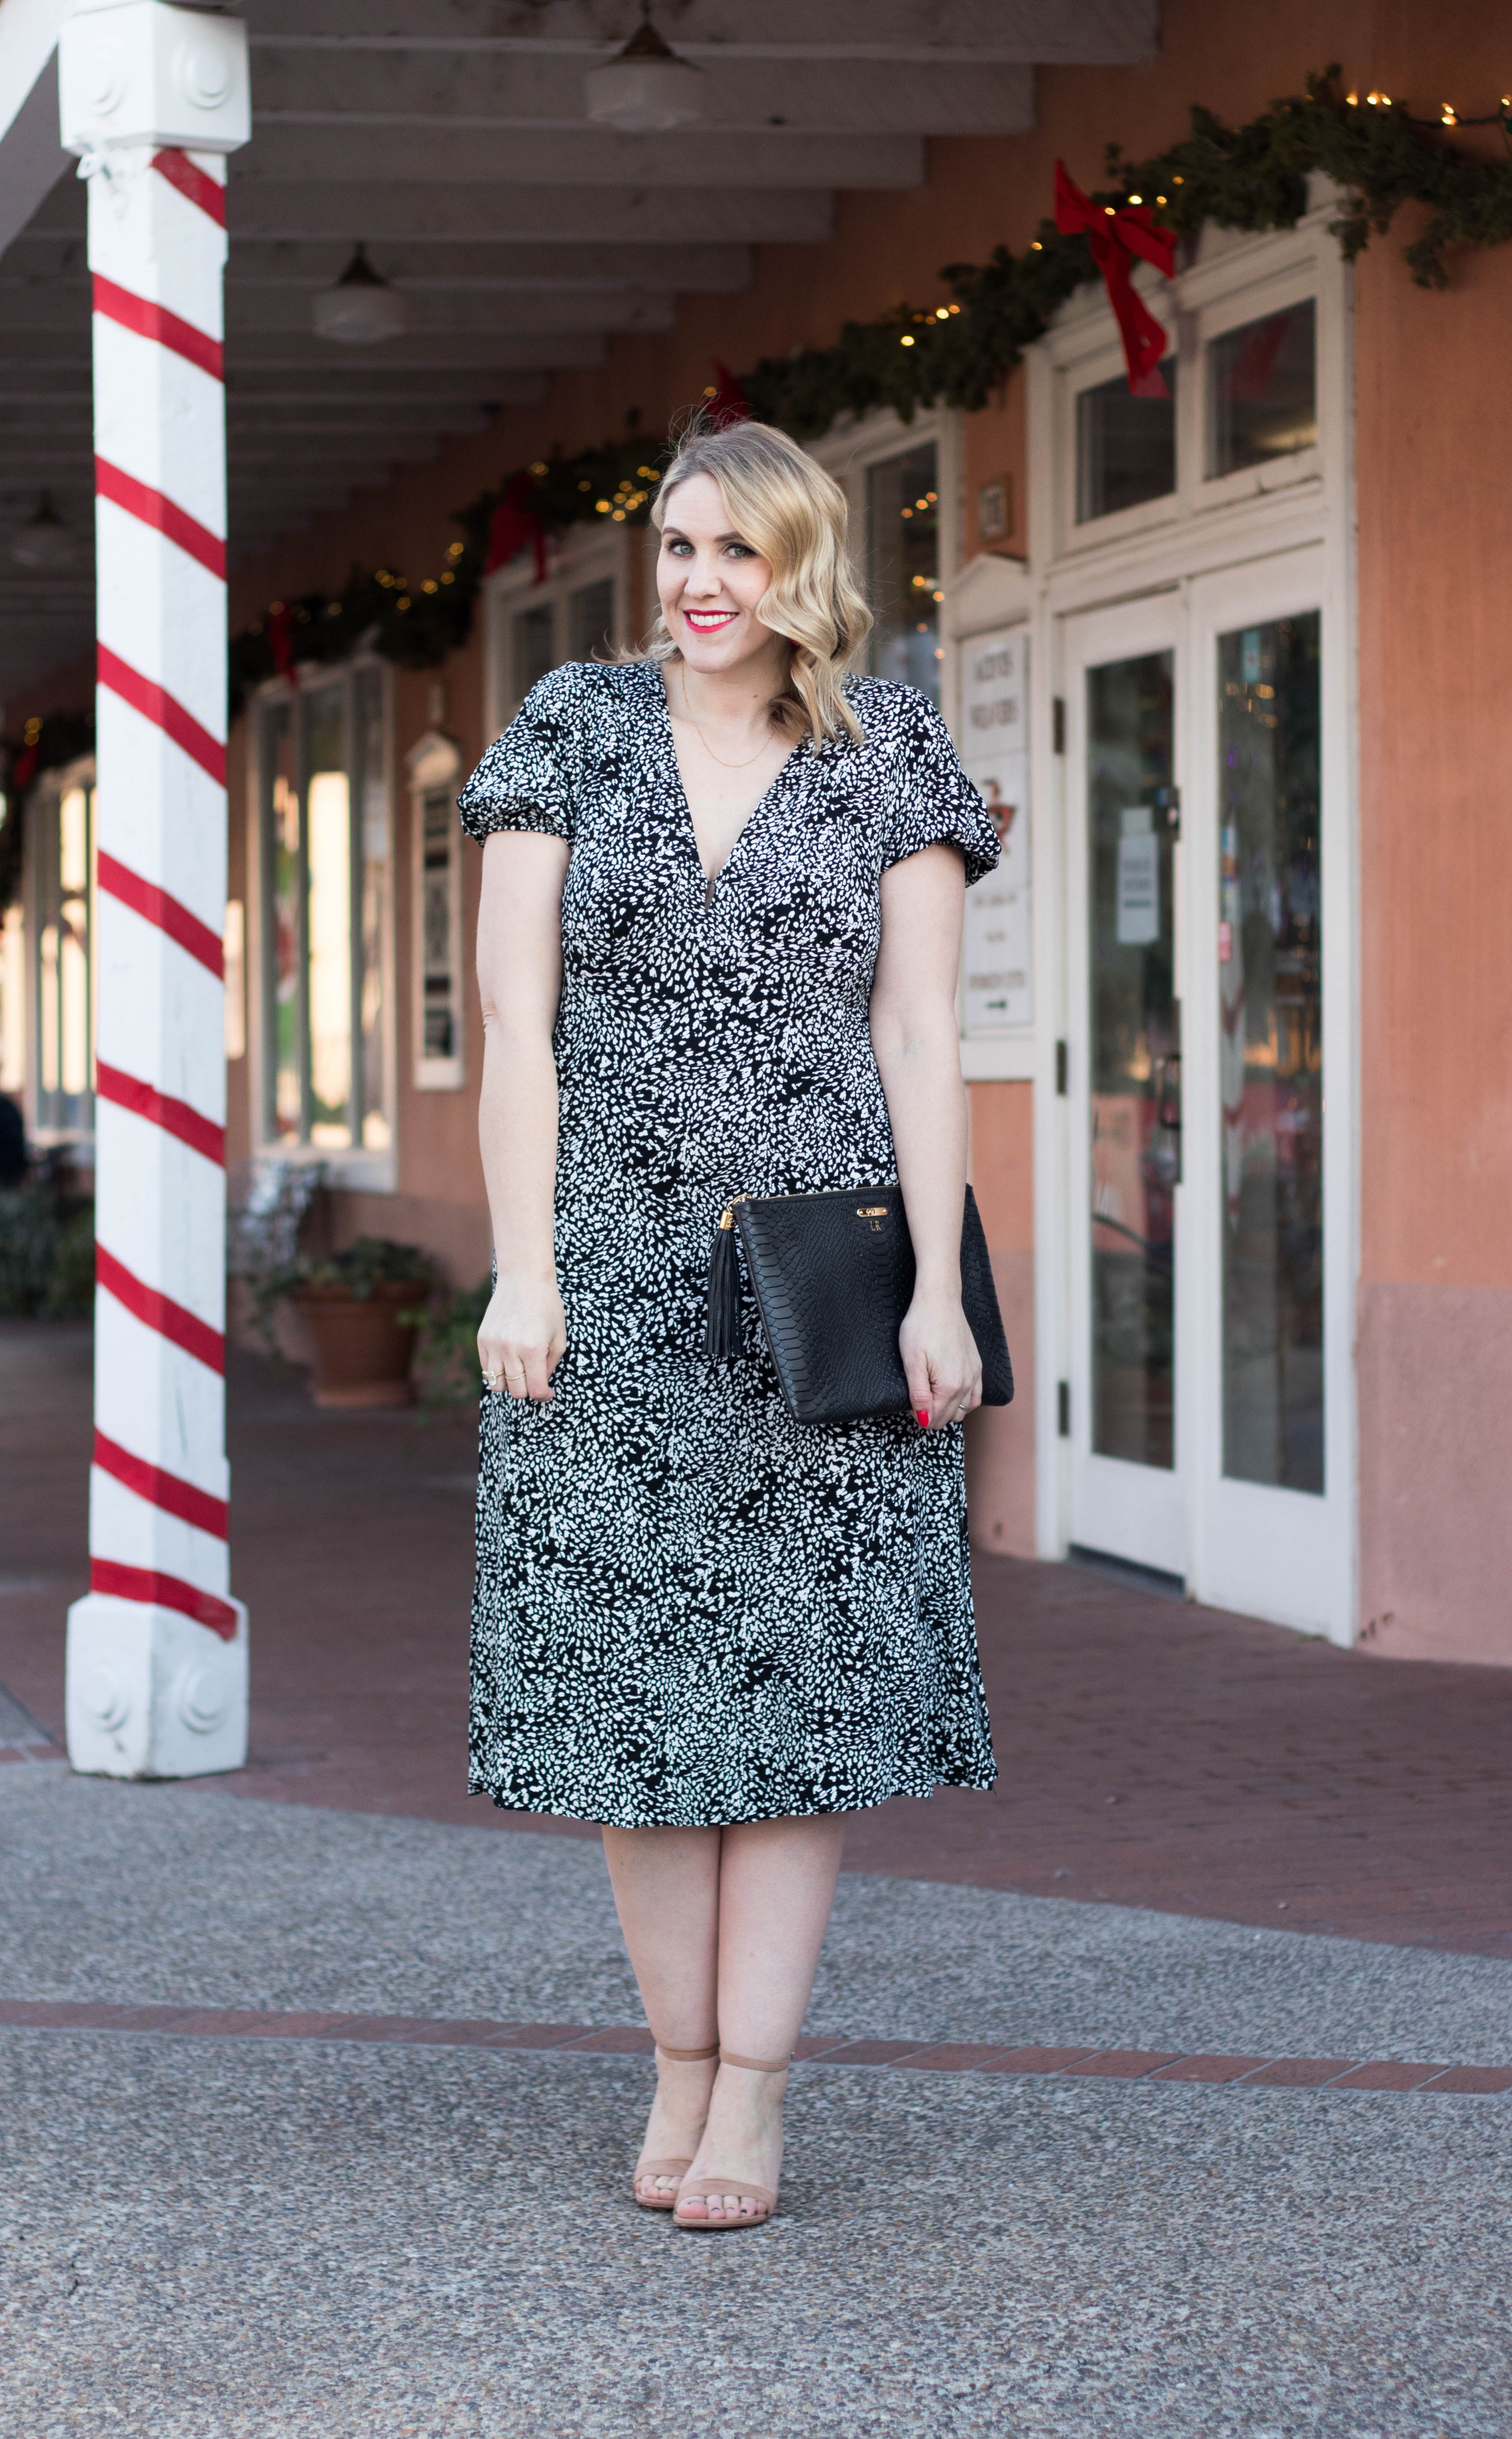 what to wear for the holidays #oldtownalbuquerque #holidays #holidayfashion